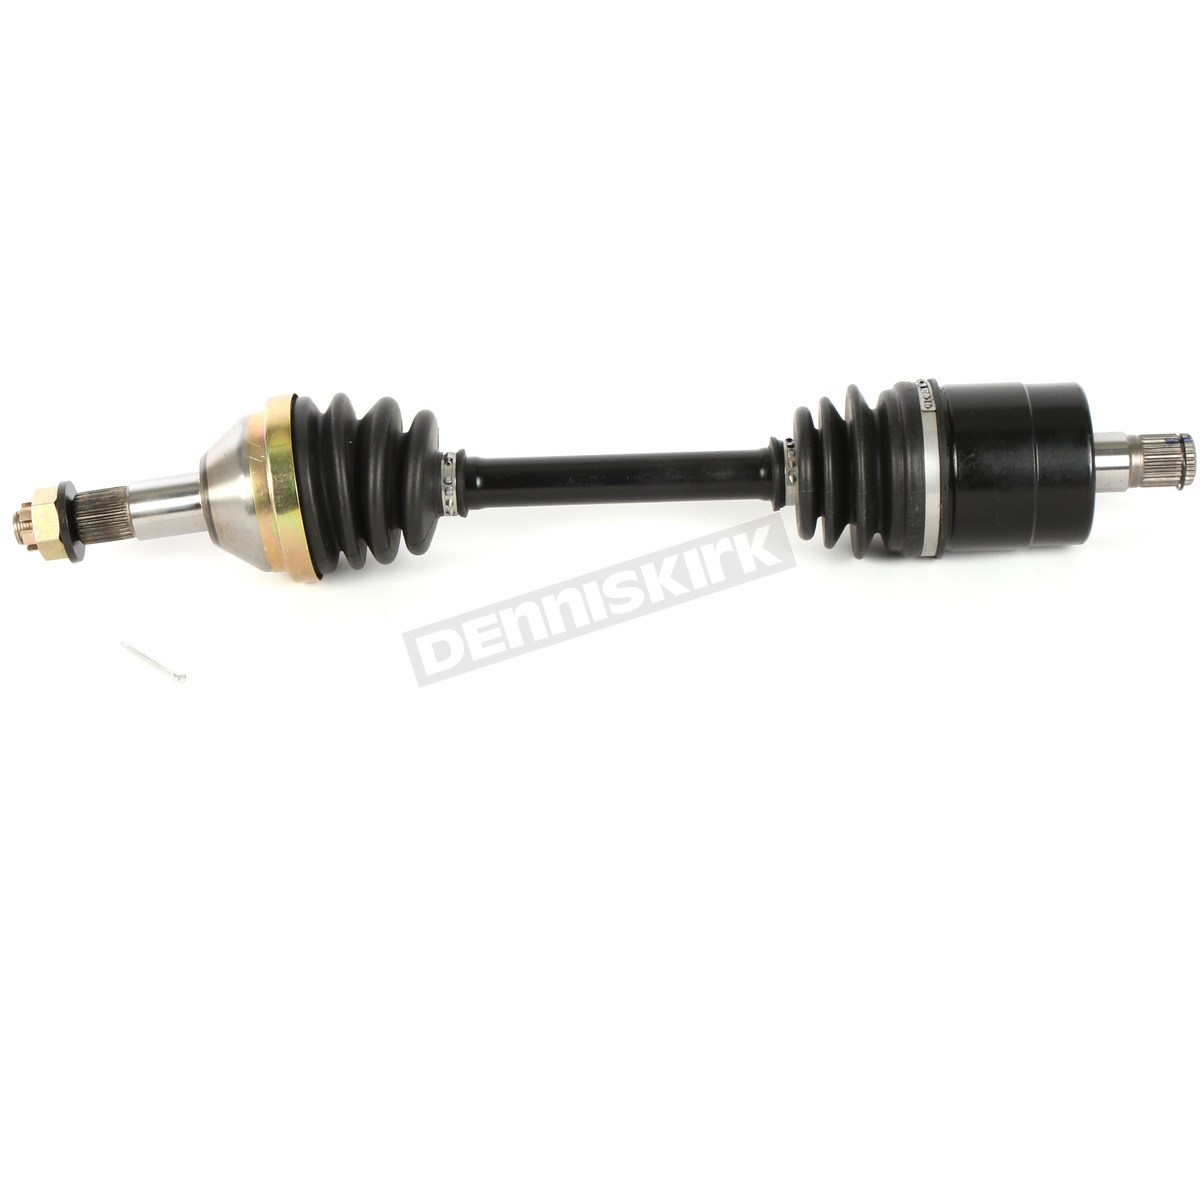 CAN-AM OUTLANDER 400 EFI XT 2011-2012 COMPLETE CV AXLE REAR RIGHT ONLY